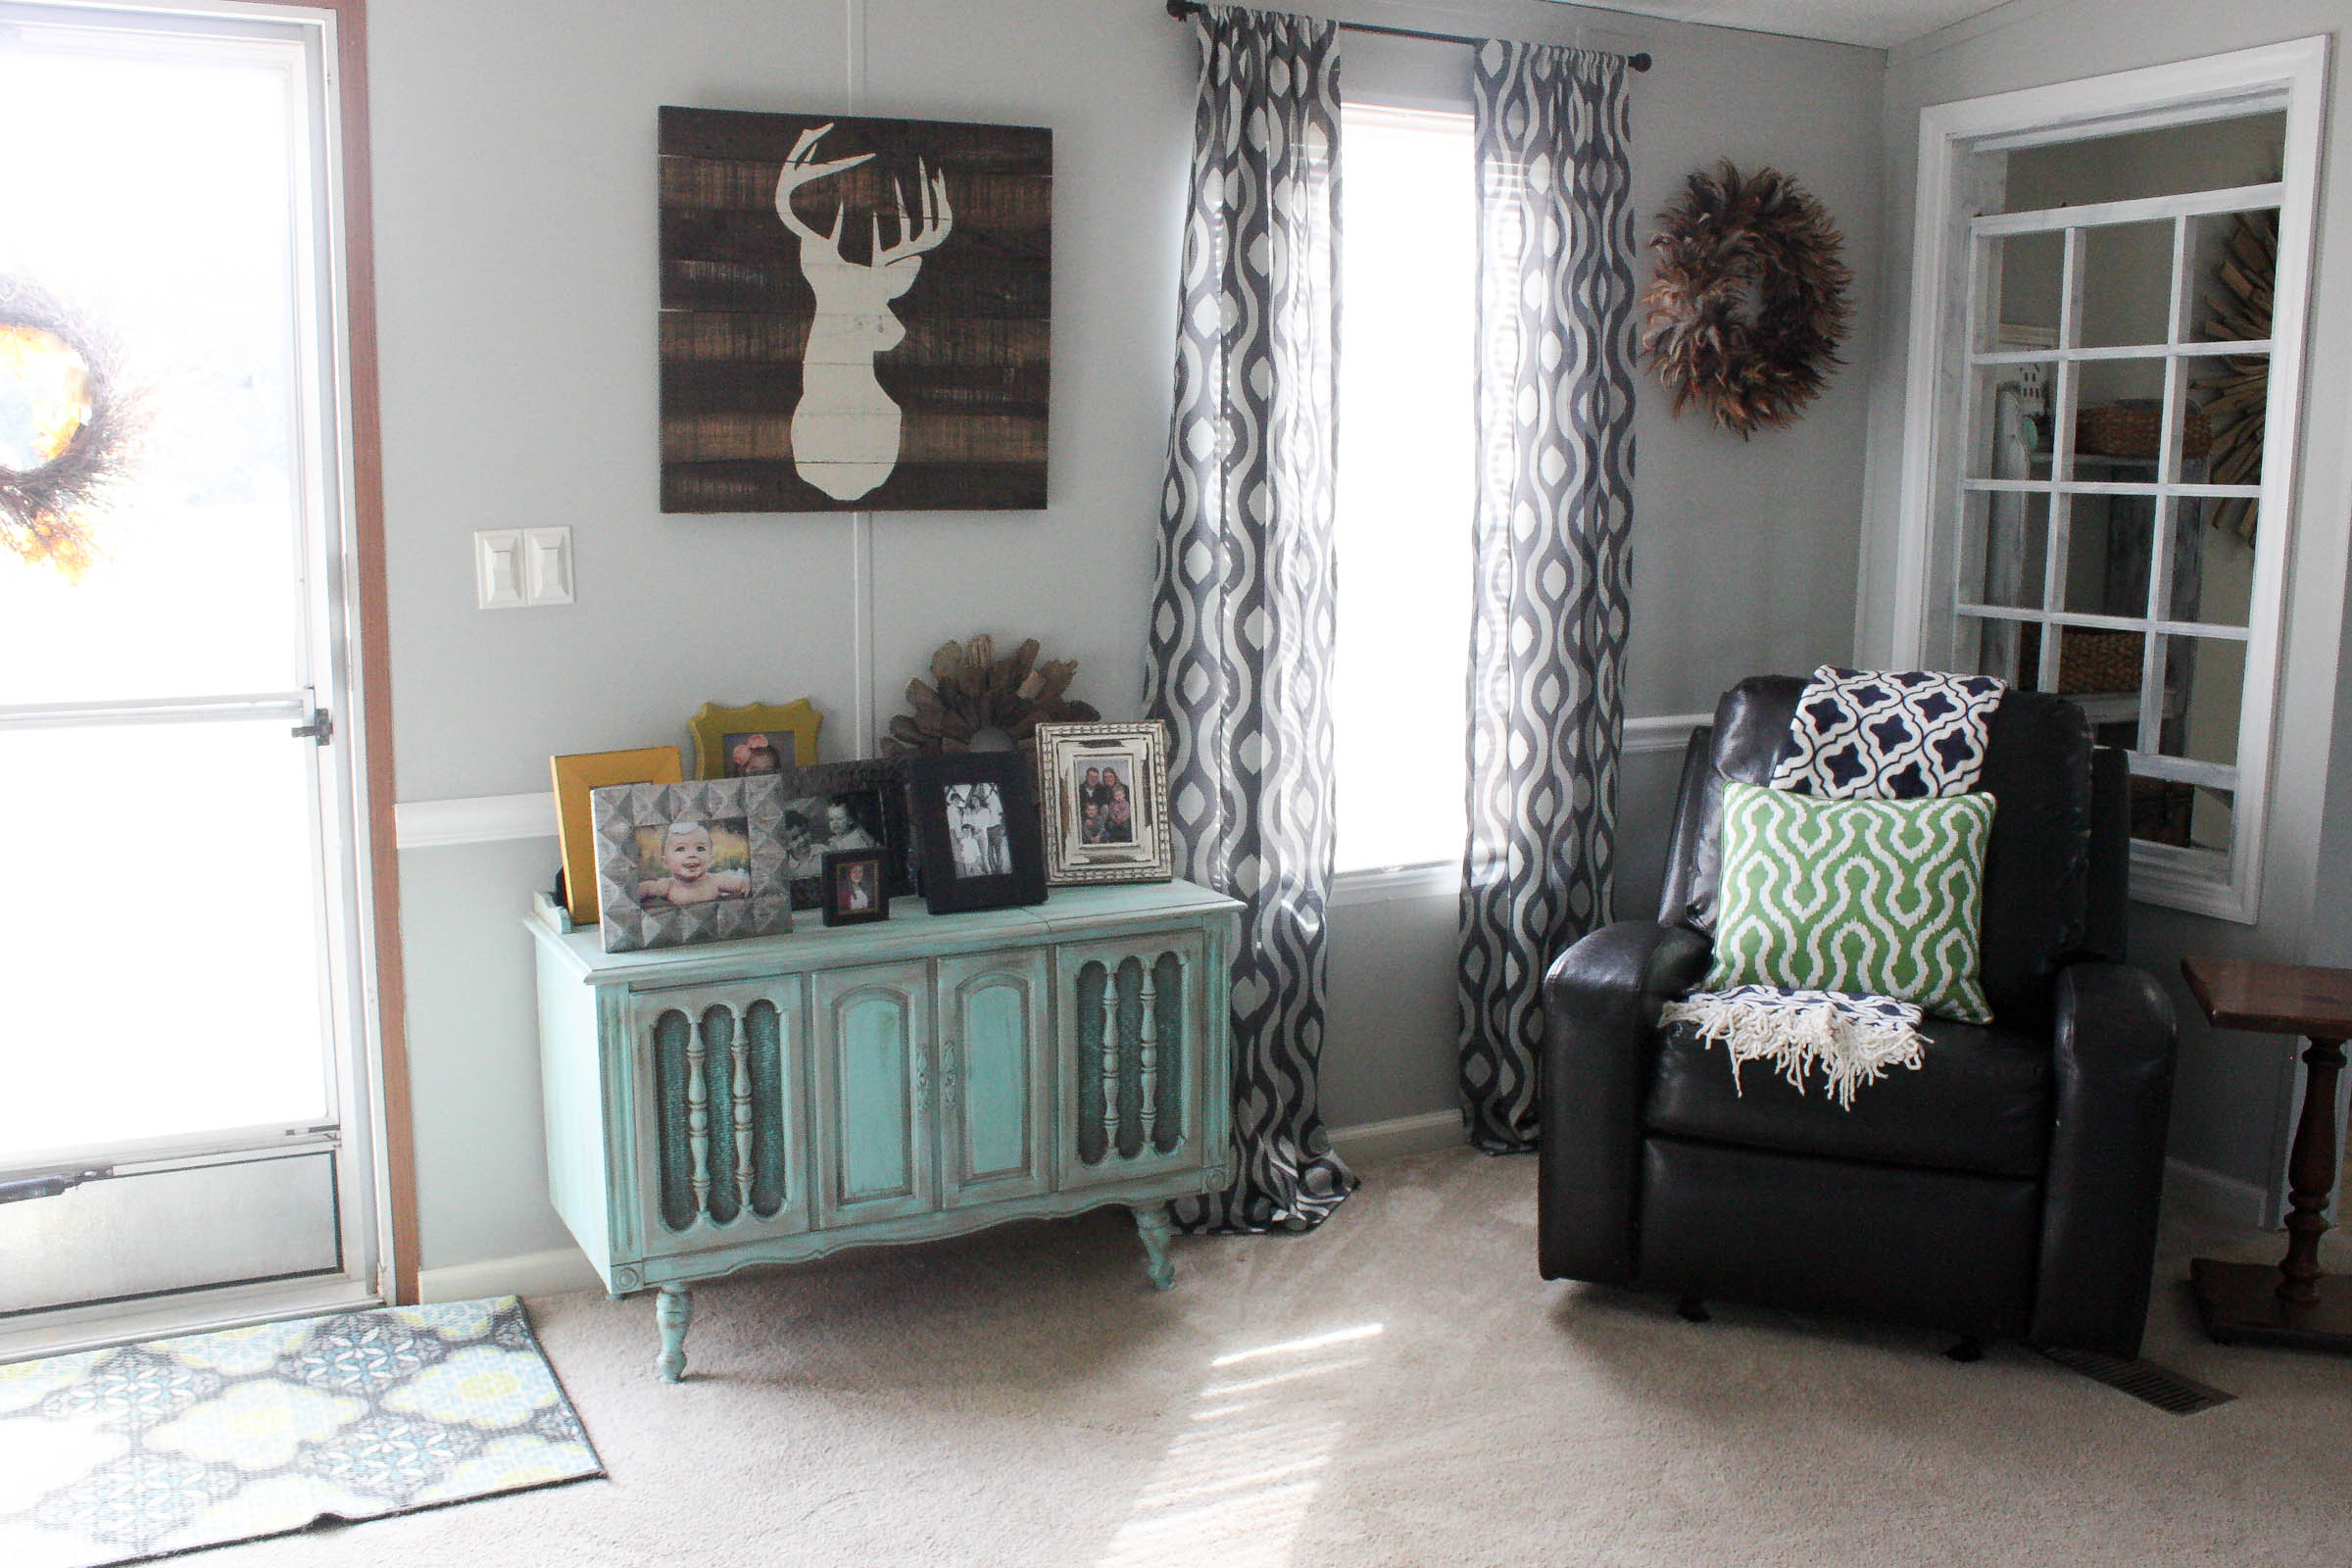 Mobile Home Living Room Reveal - Re-Fabbed